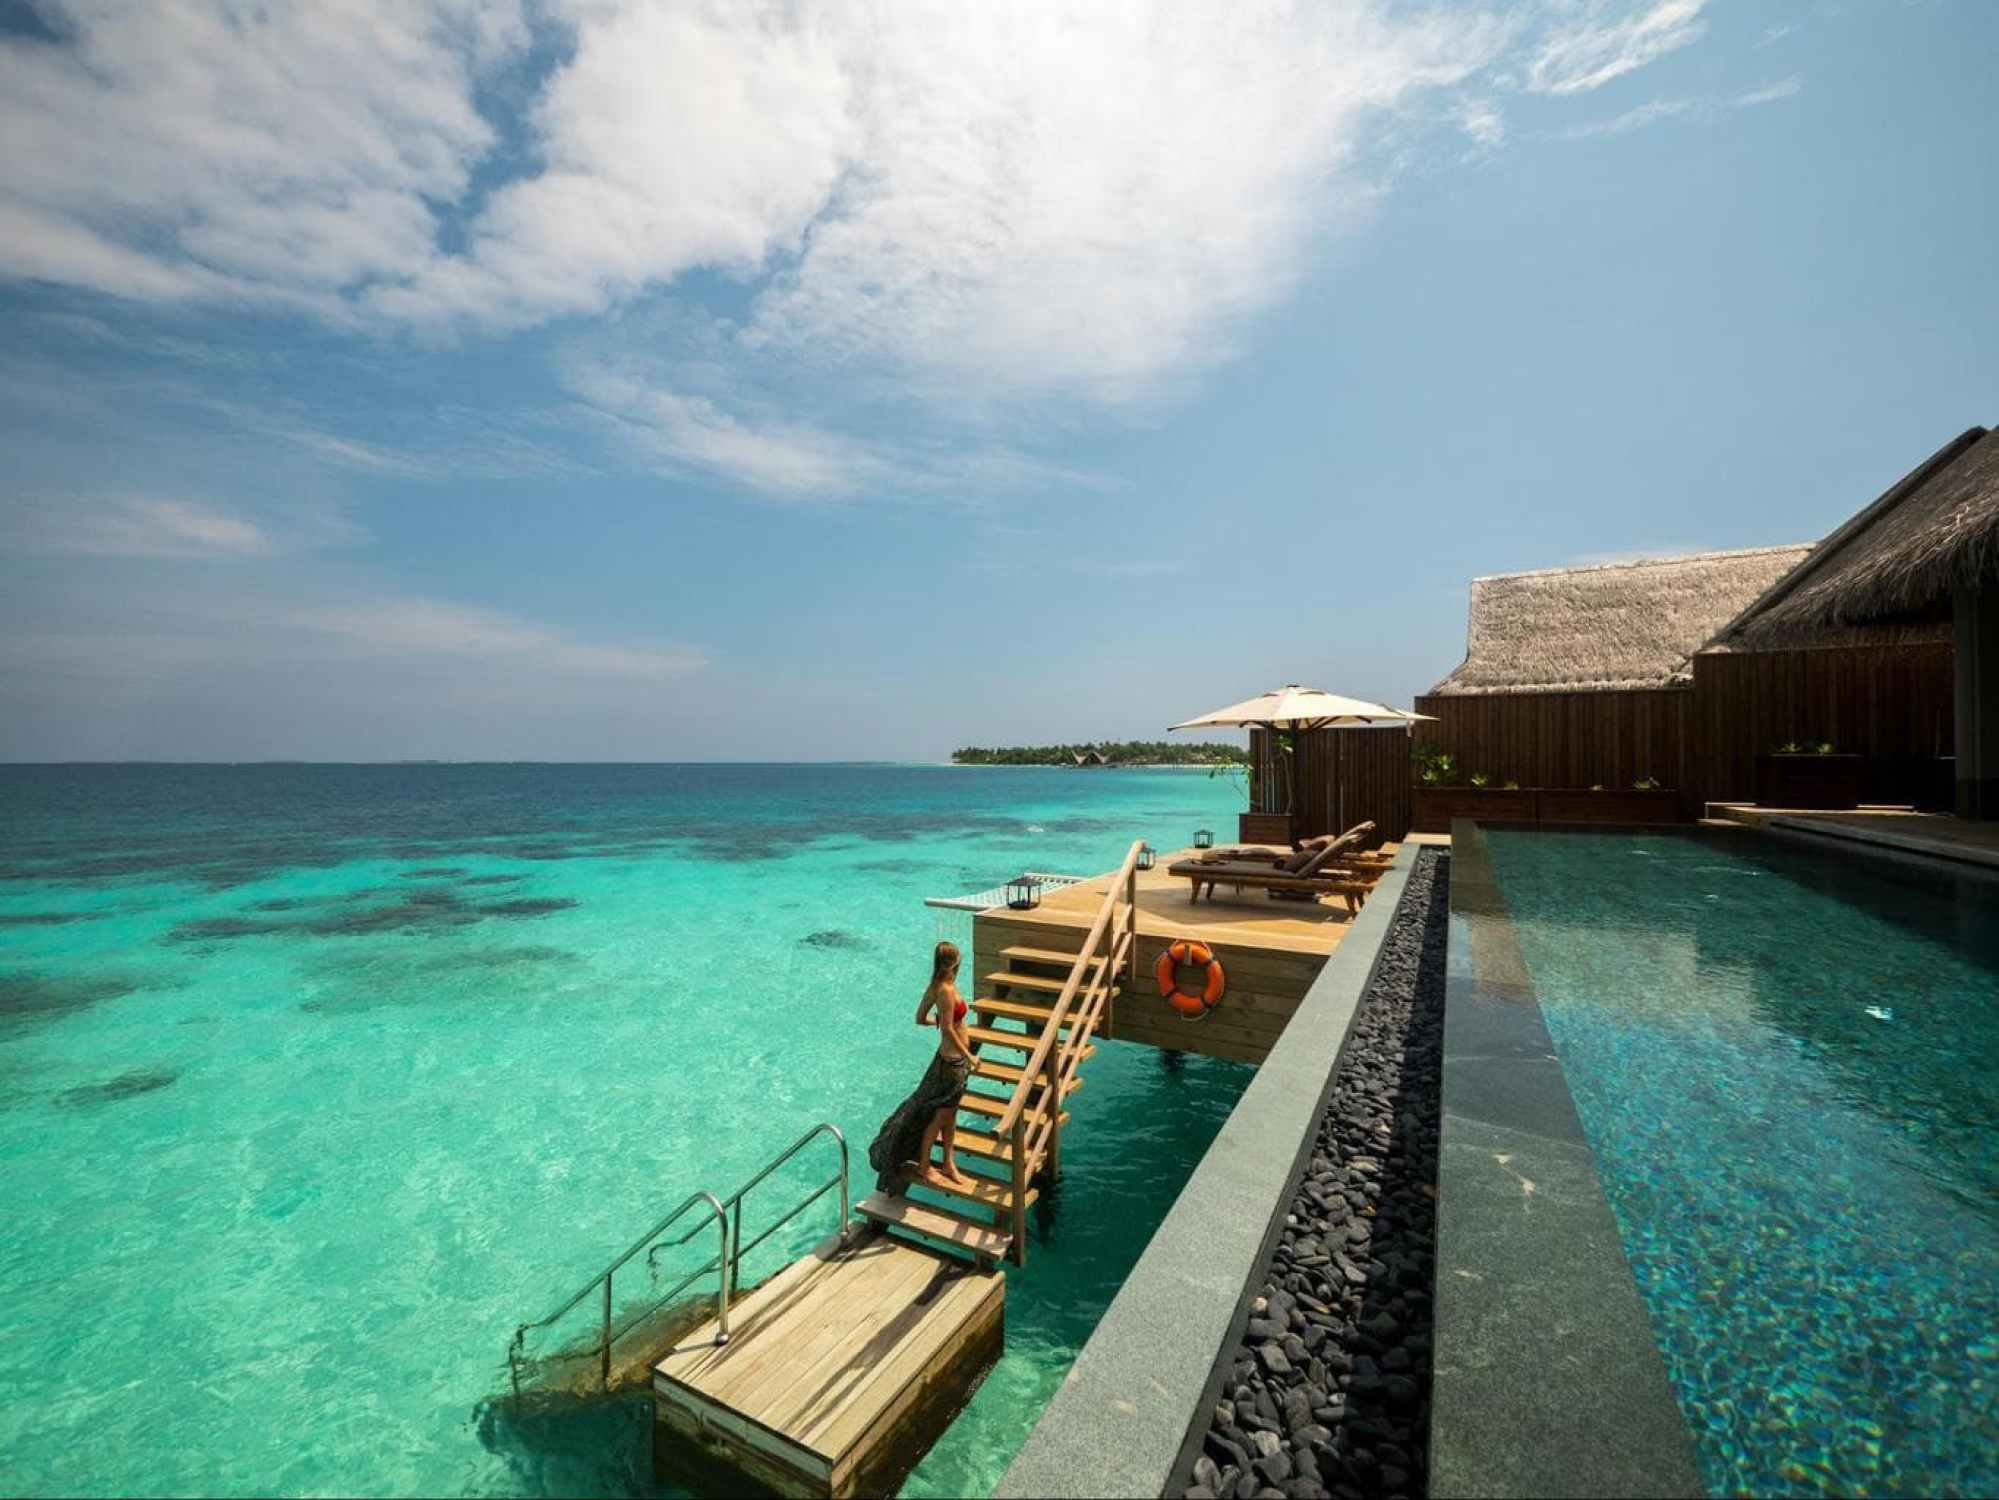 Outdoor decks of the over water villas at Joali Maldives